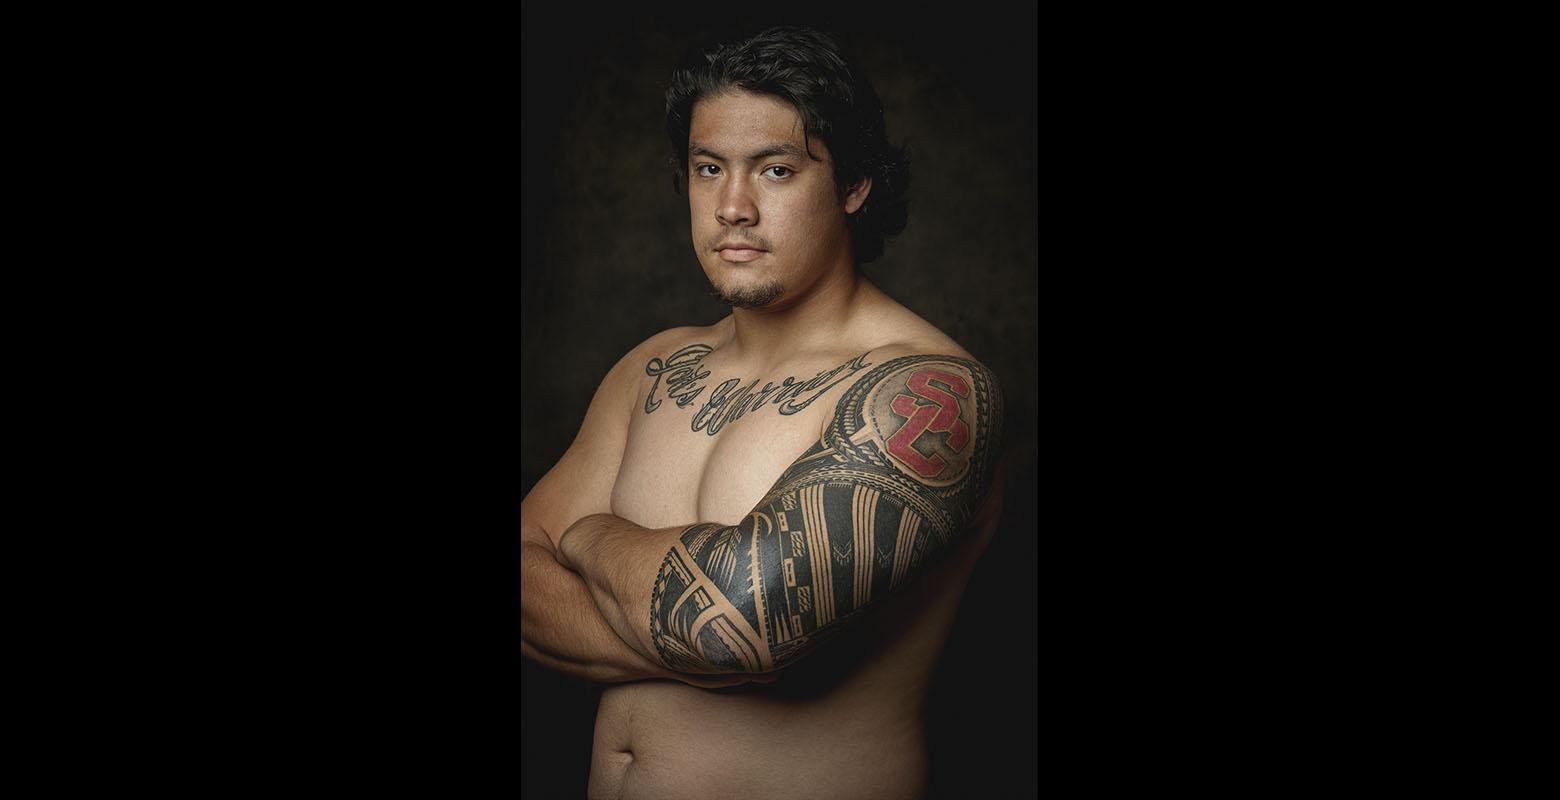 A man poses to show off his arm and chest tattoos